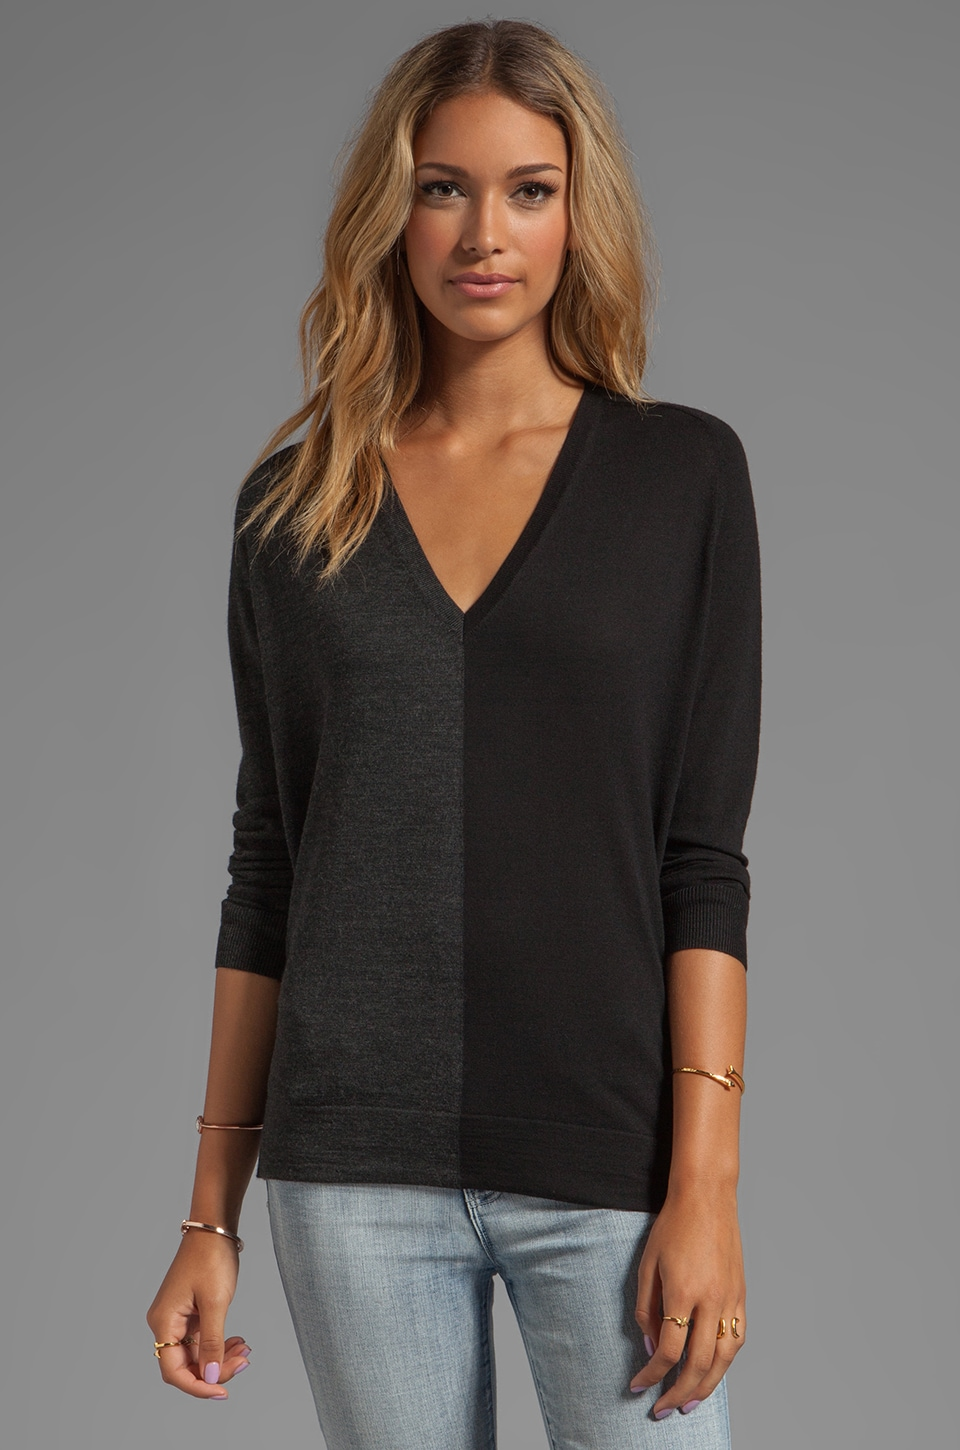 Theory Adrianna CB Sweater in Charcoal/Black